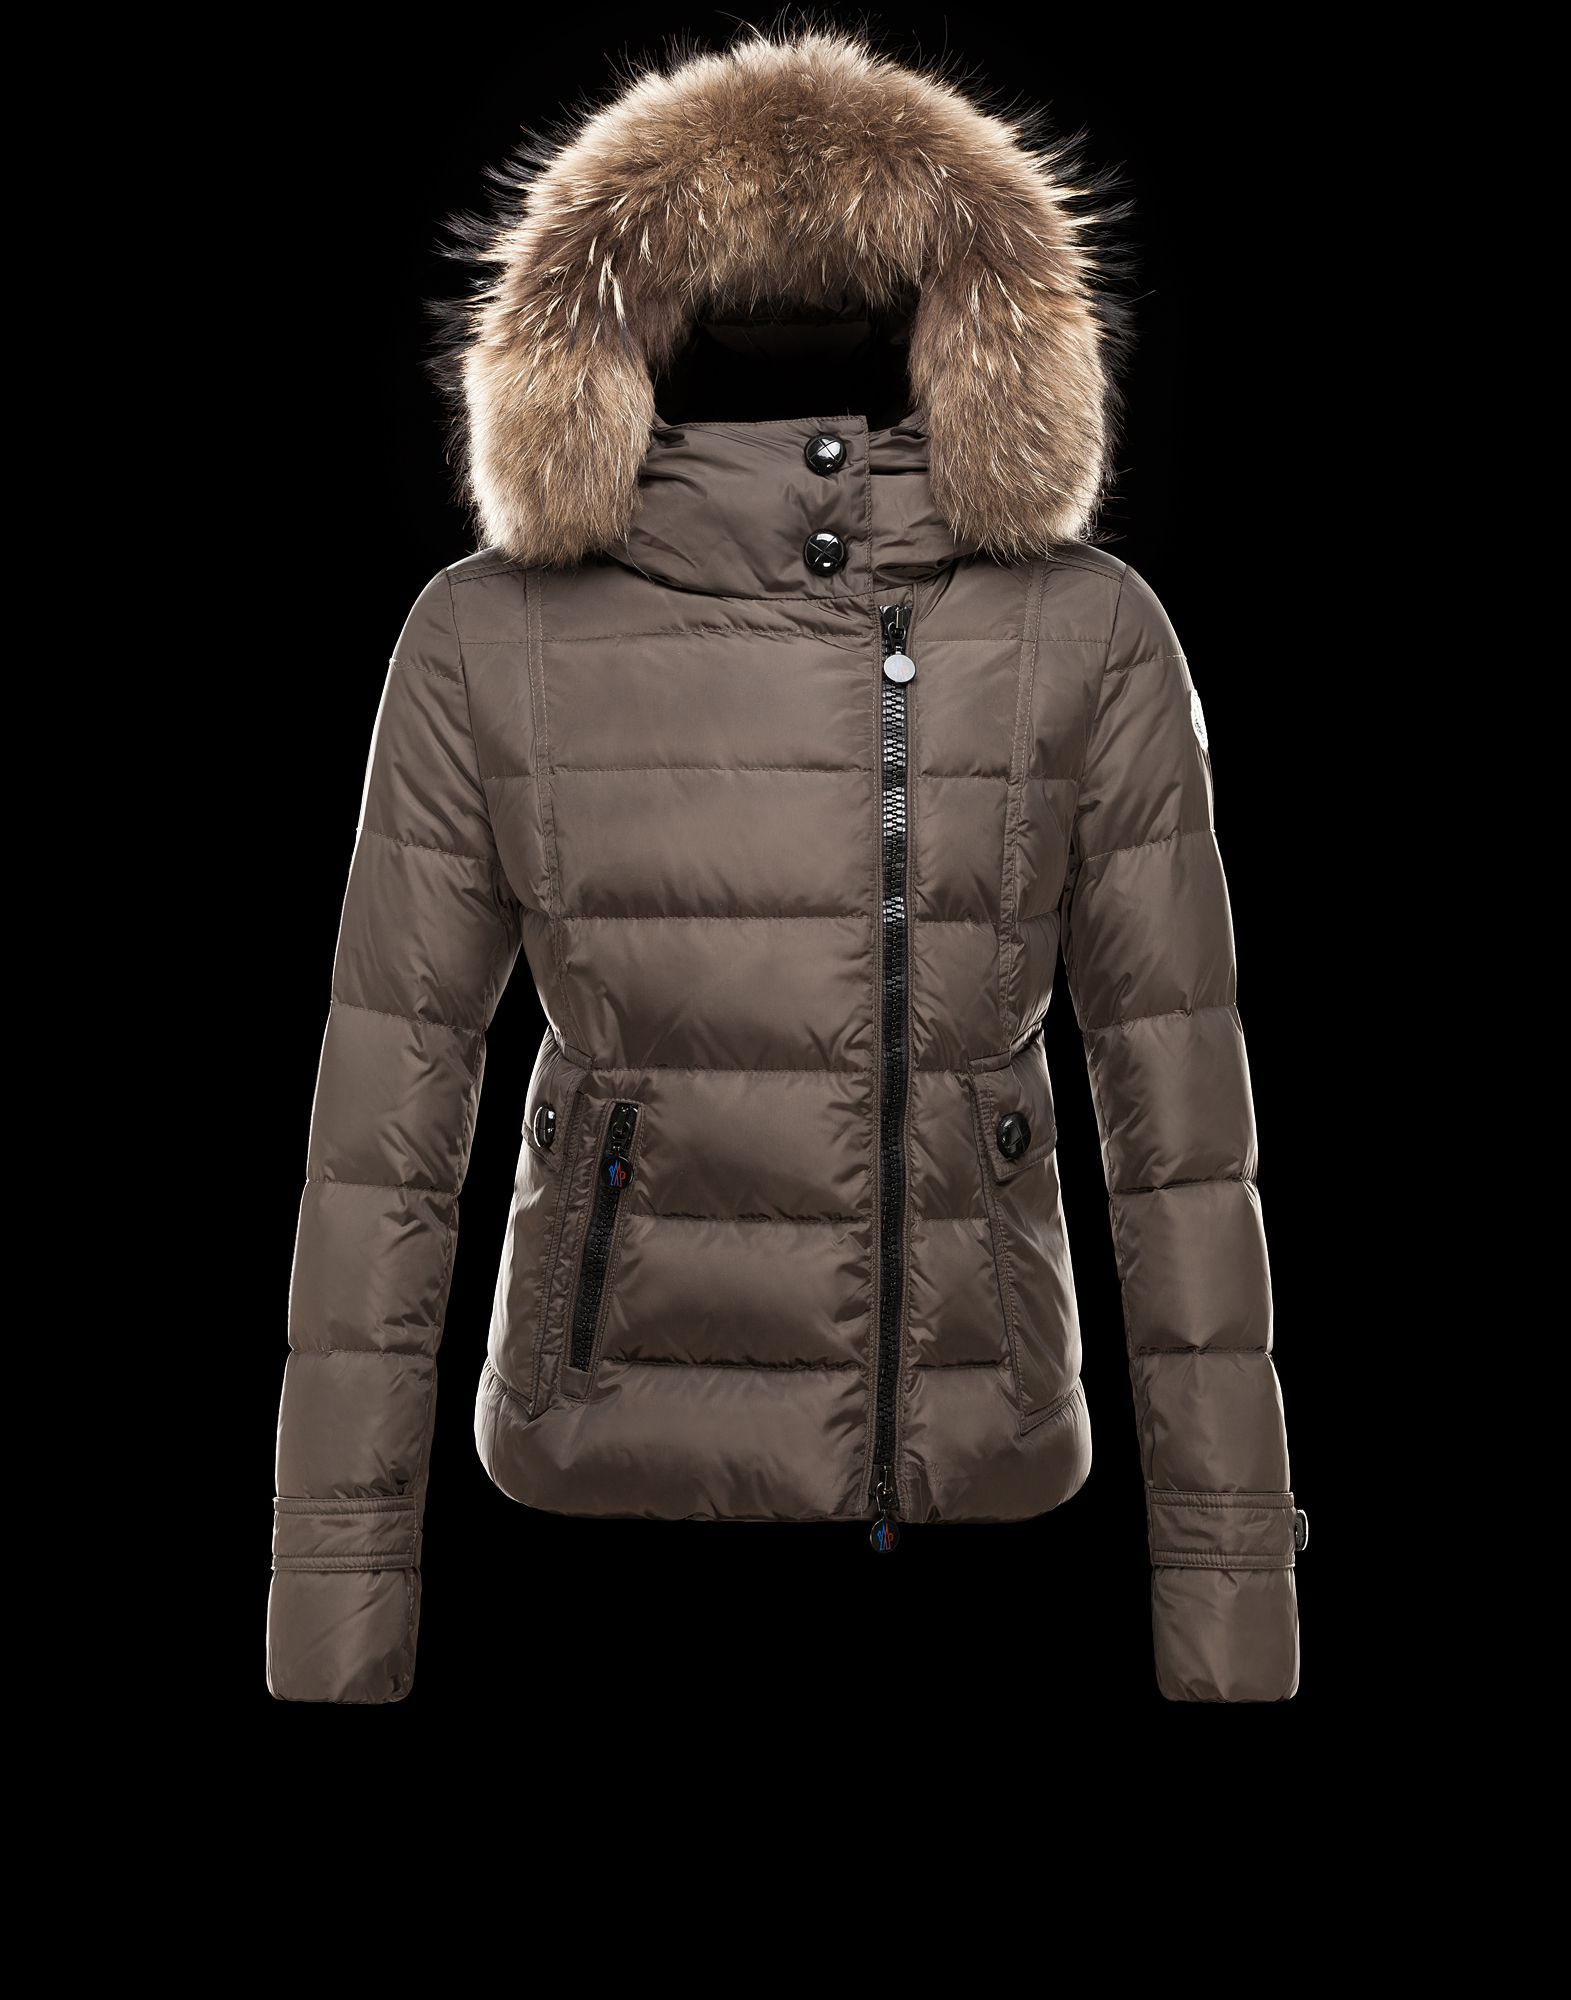 Clothing and down jackets for men, women and kids My